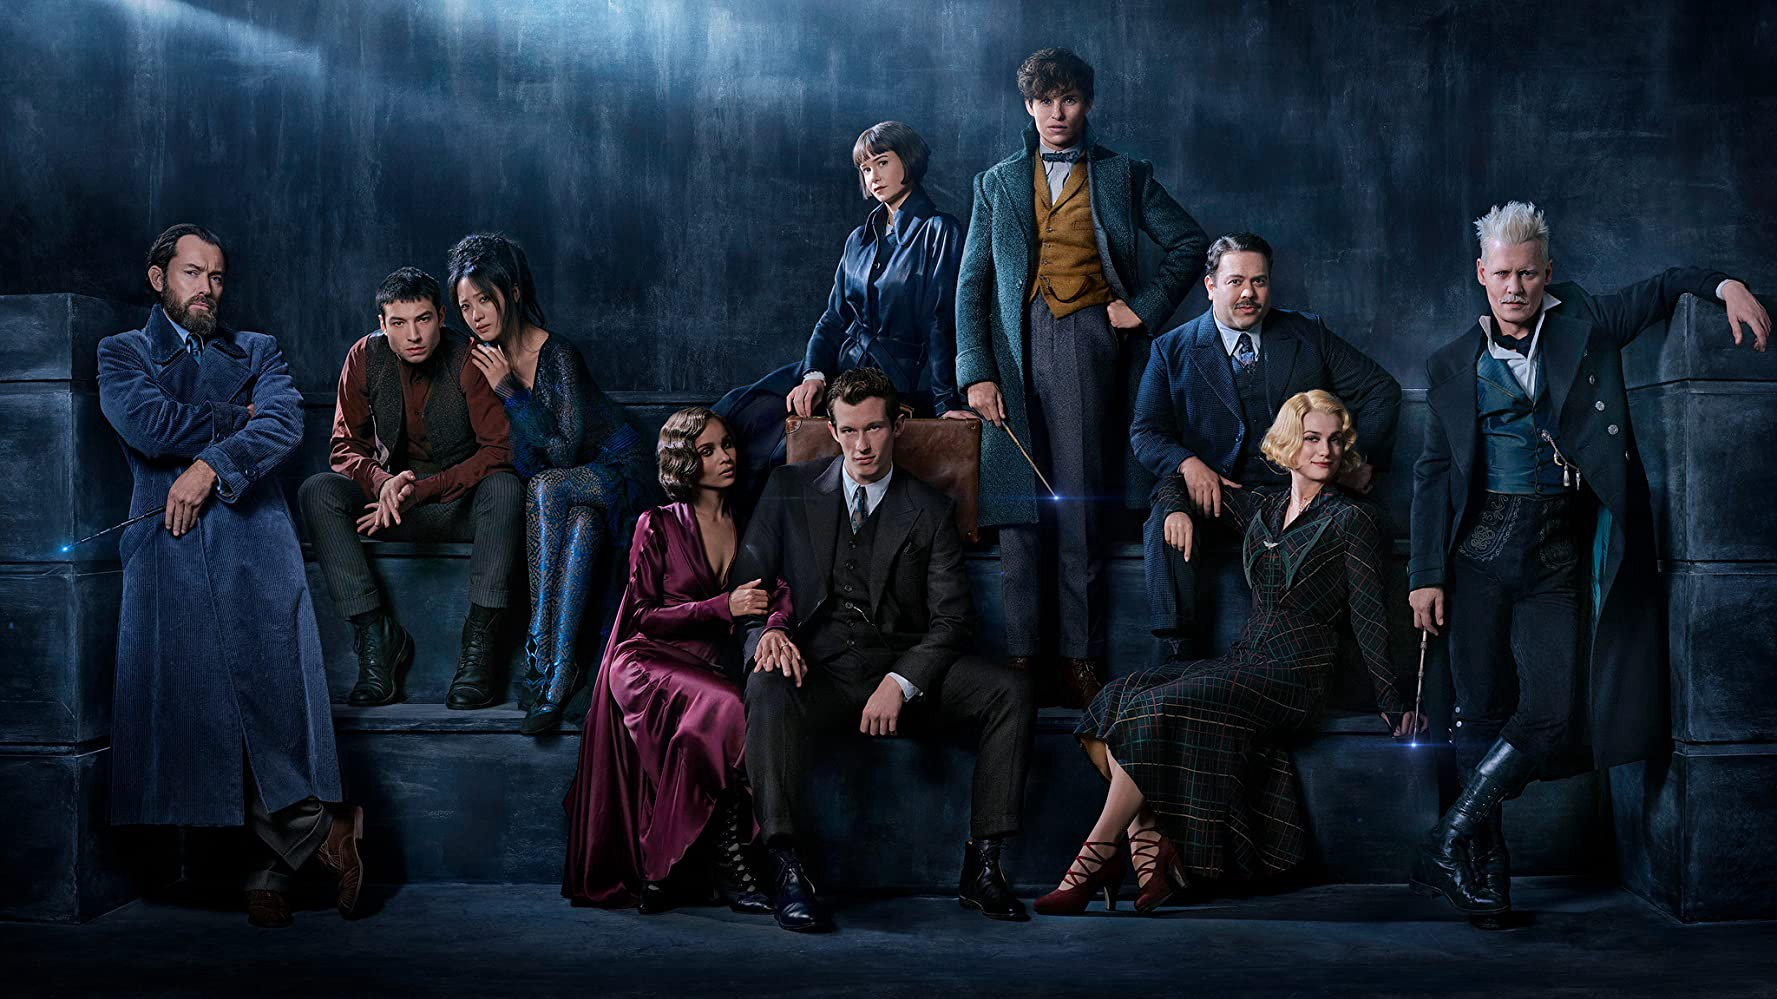 The cast of Fantastic Beasts 2 dressed as their characters in front of a blue dark background.